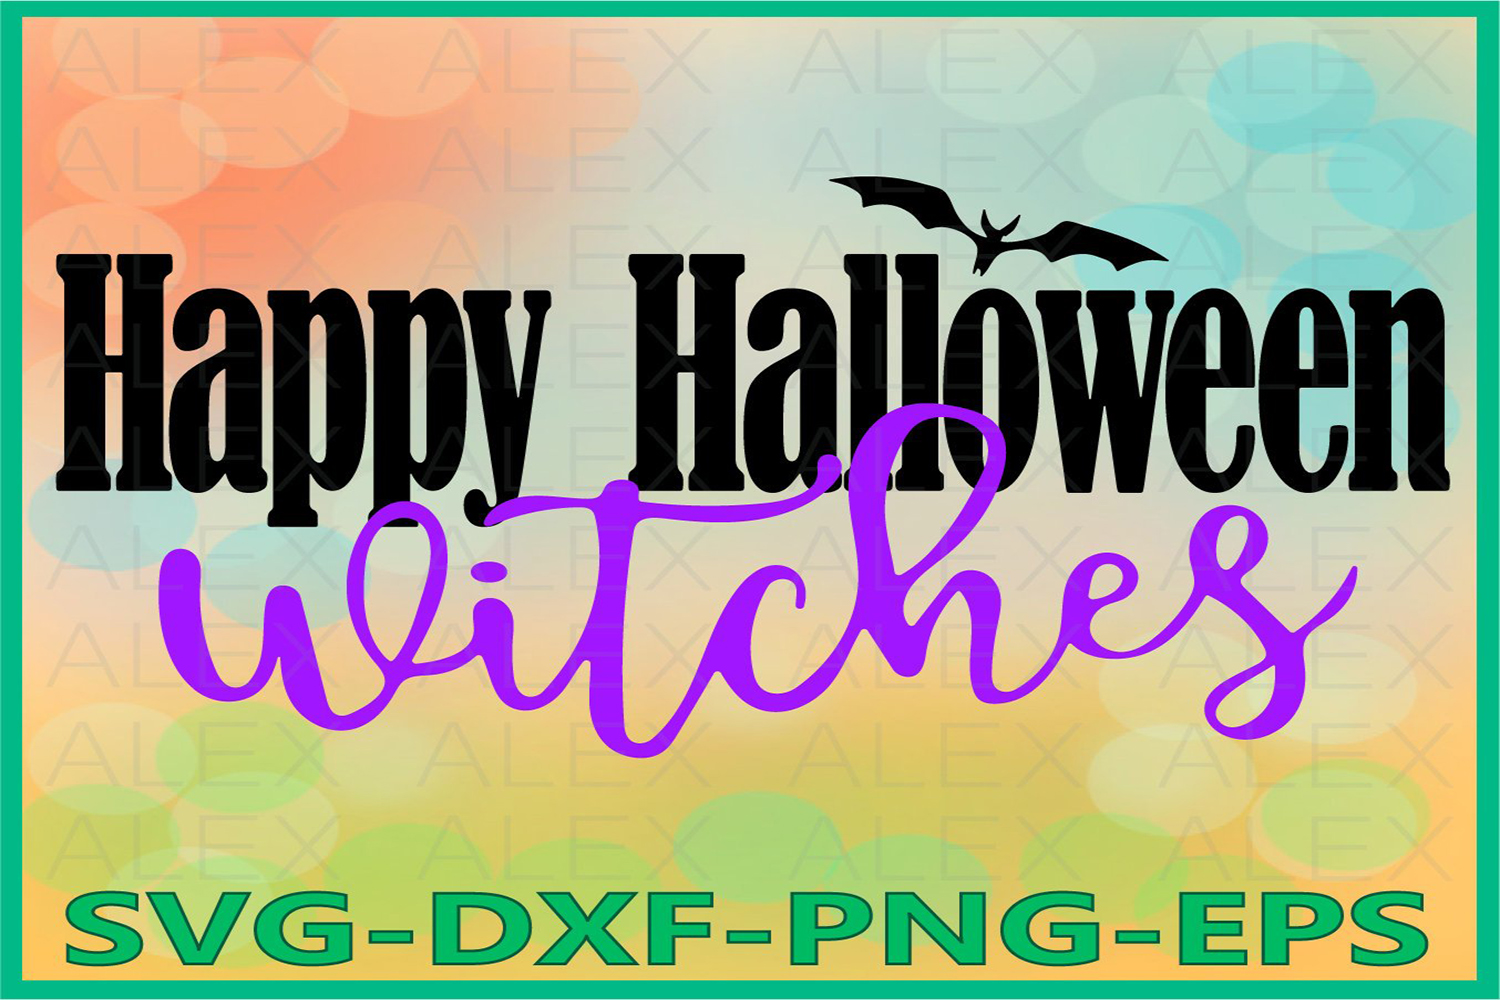 Happy Halloween Witches Svg, Halloween Witches, Witch png example image 1